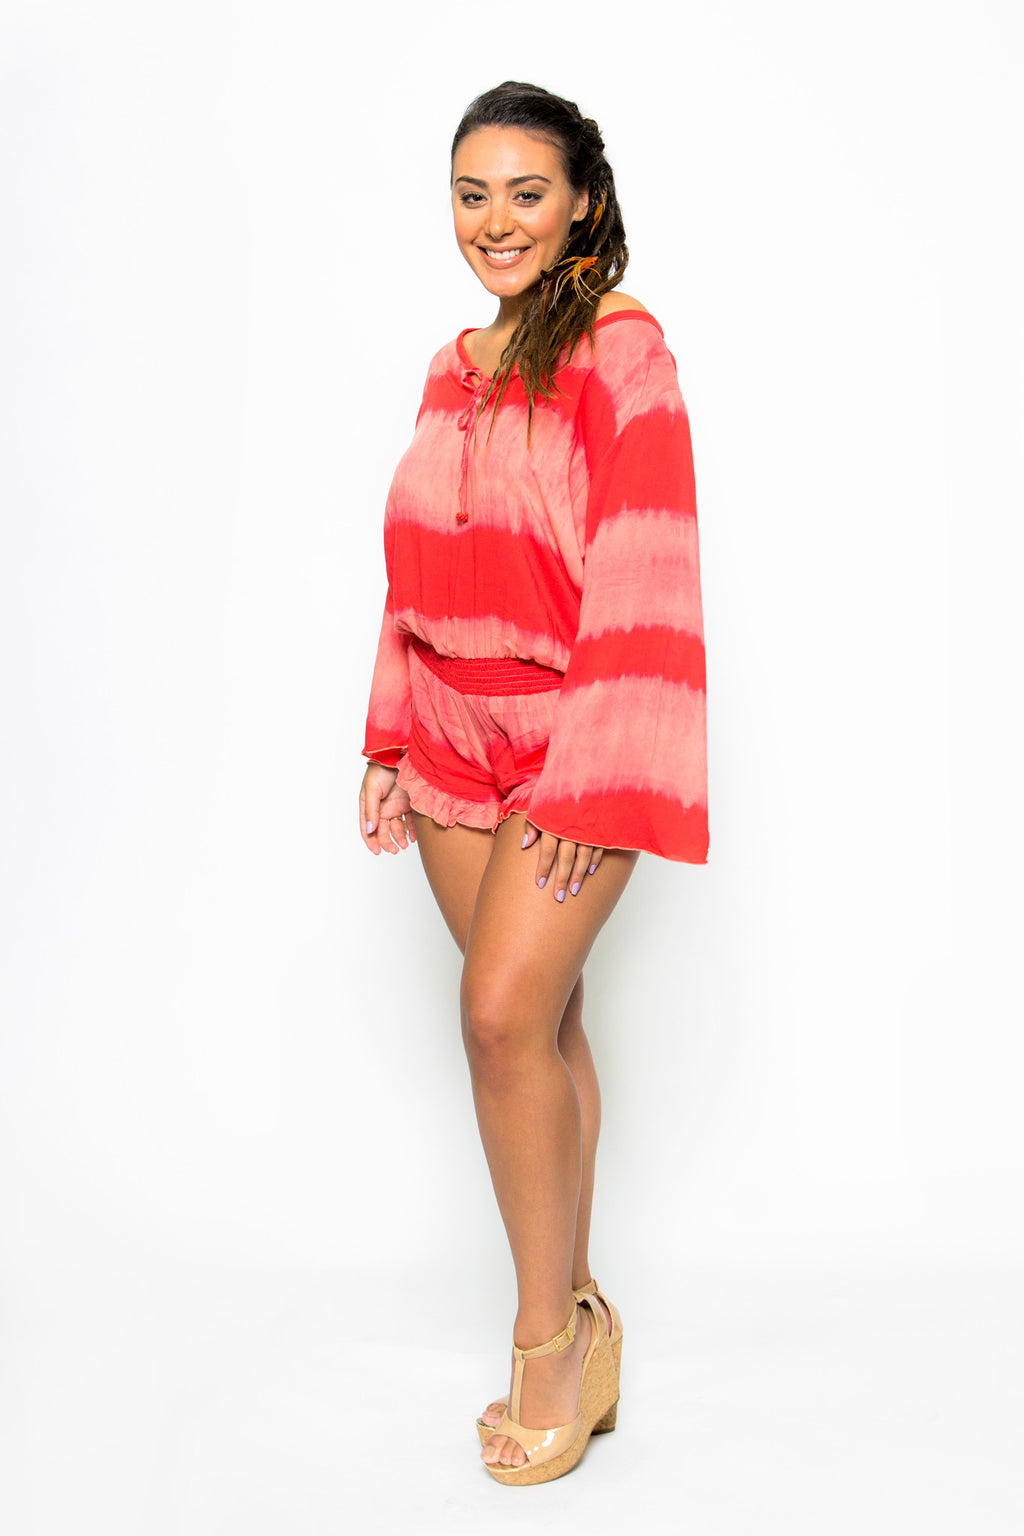 Khush Clothing Balihai Romper in Coral - Boho Bum Island Clothing Swimwear Bohemian Boho west palm beach  Miami florida  fall fashion spring fashion online shopping ootd blogger style swim boutique